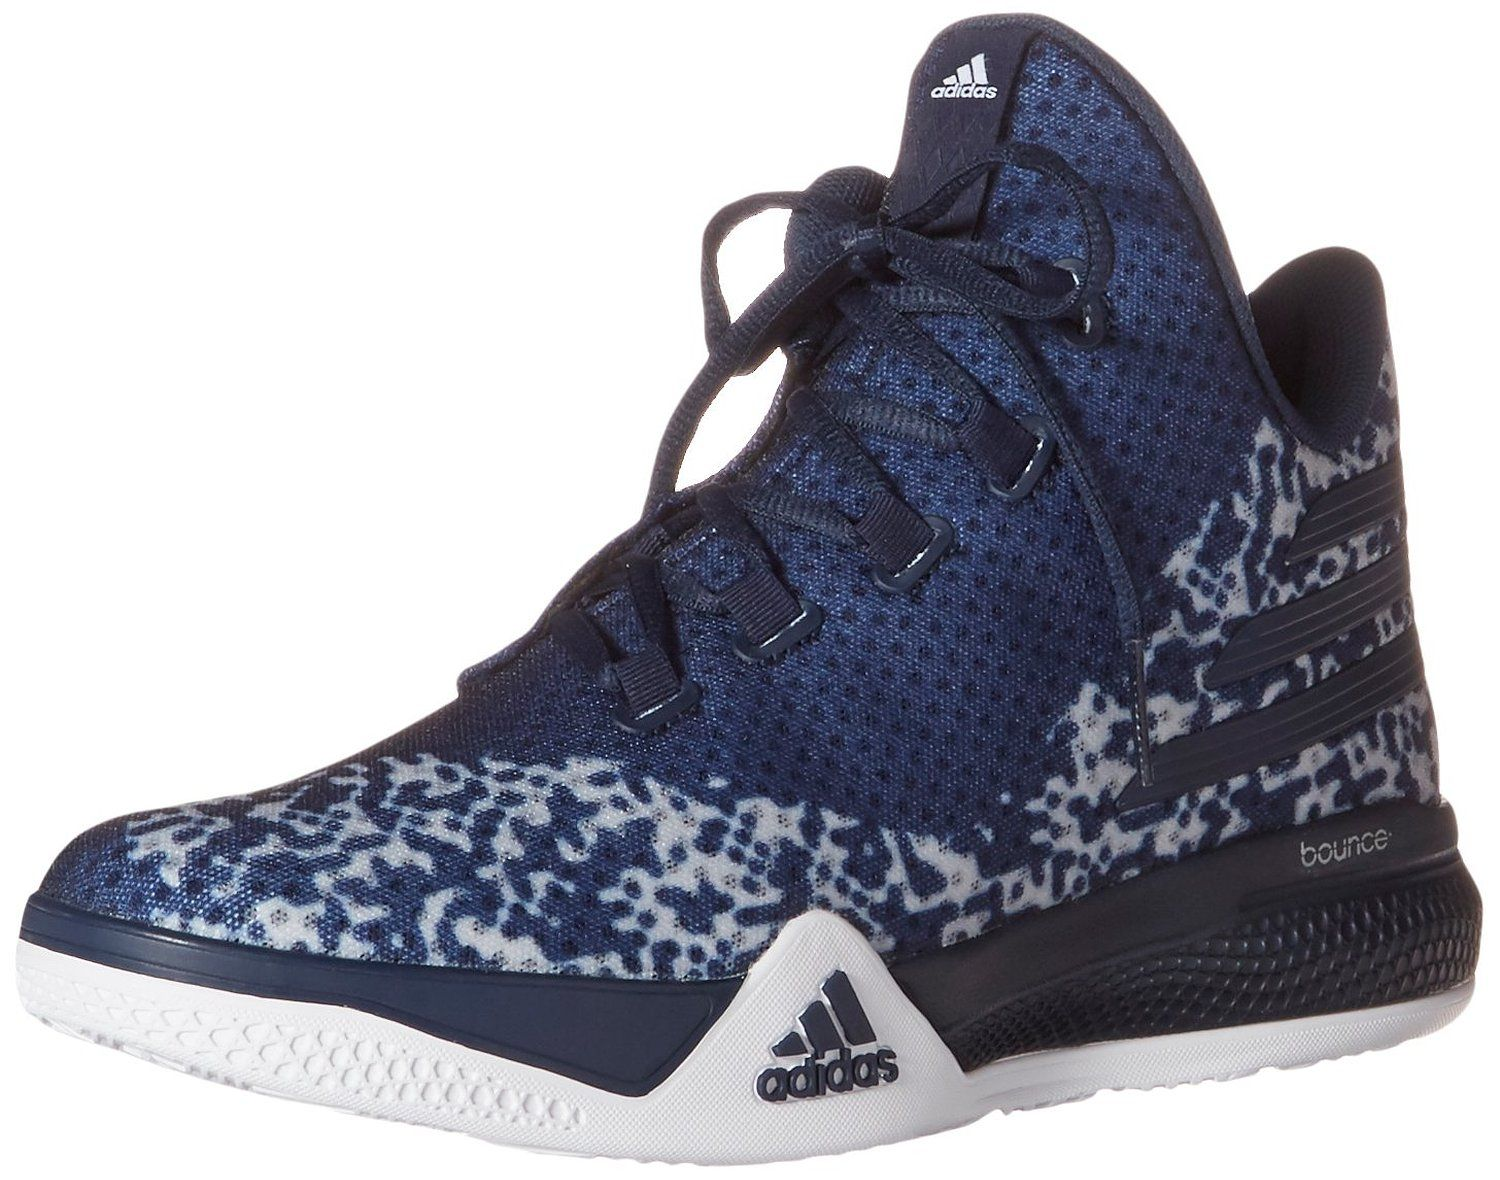 The Best adidas Basketball Shoes My Selected Picks Best